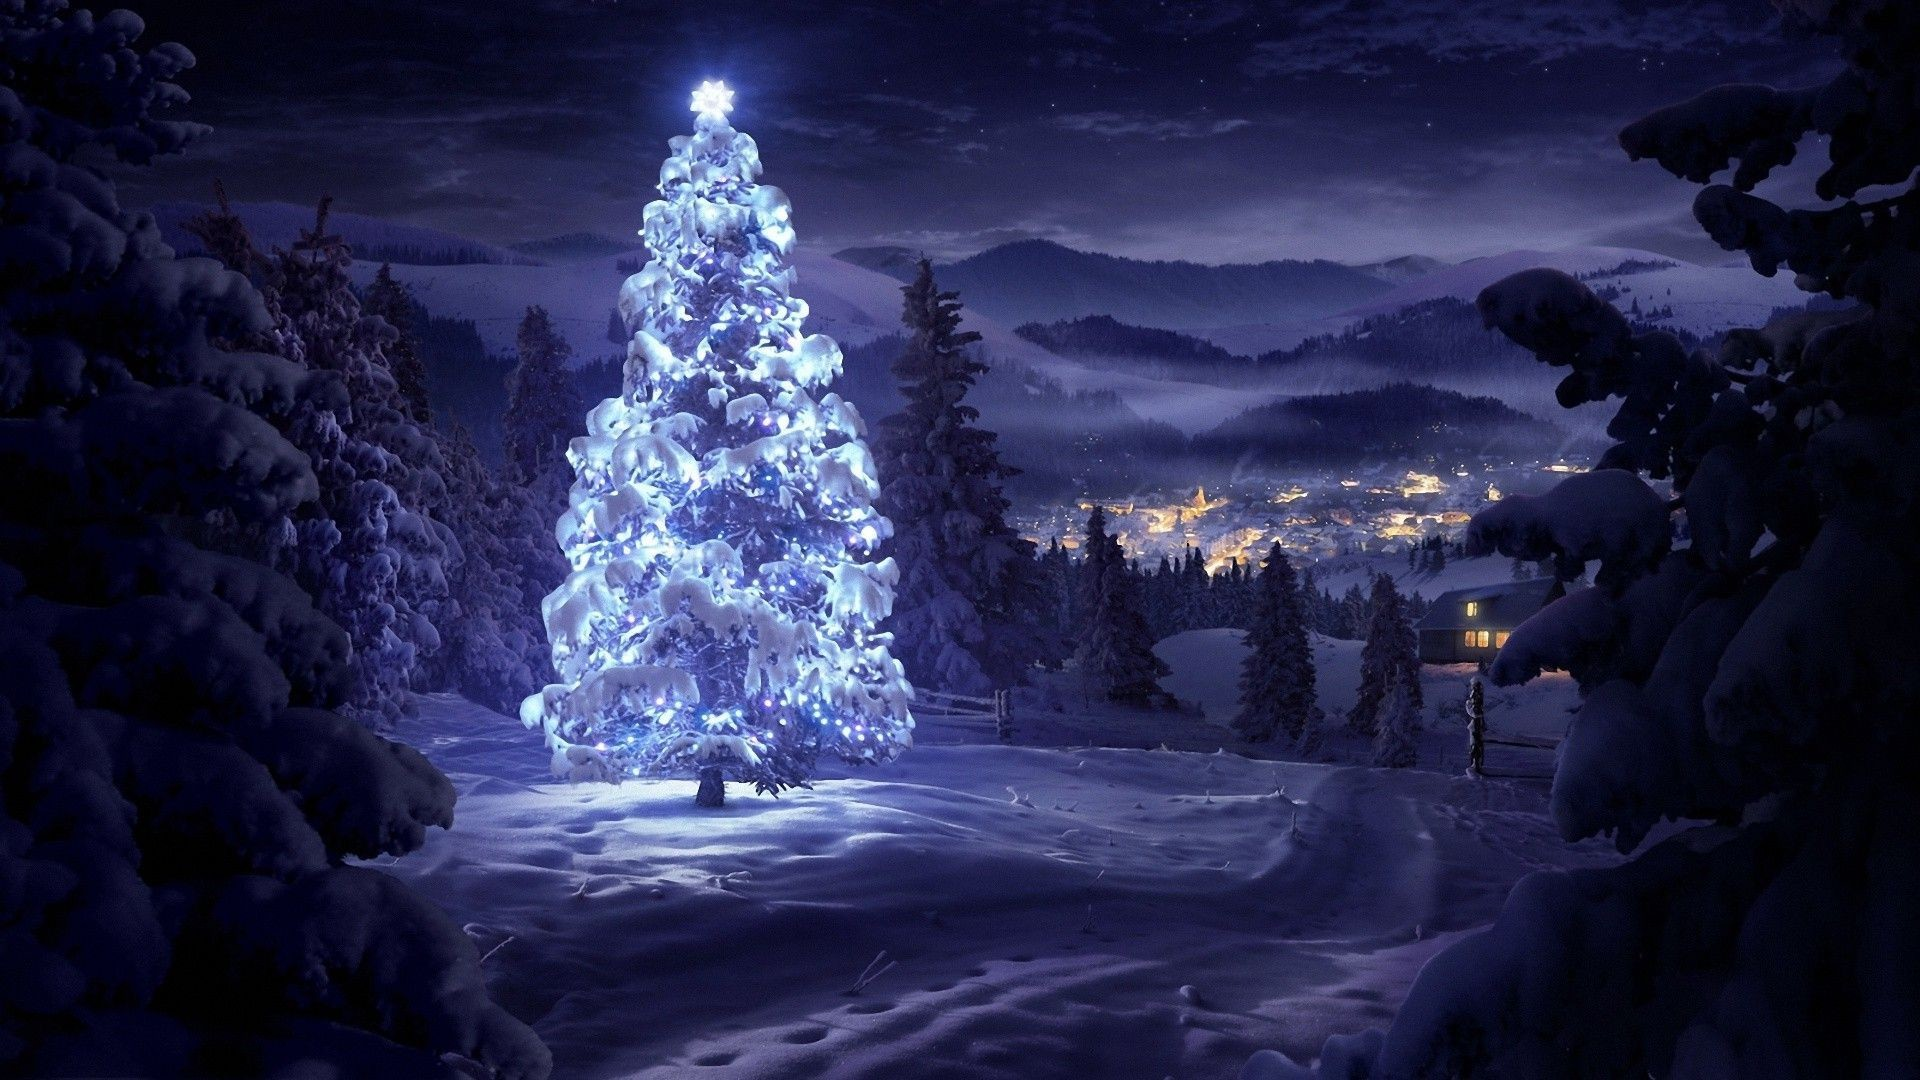 Snow Wallpapers 1920x1080 Full Hd: Christmas Snow Wallpaper Scenes (38+ Images